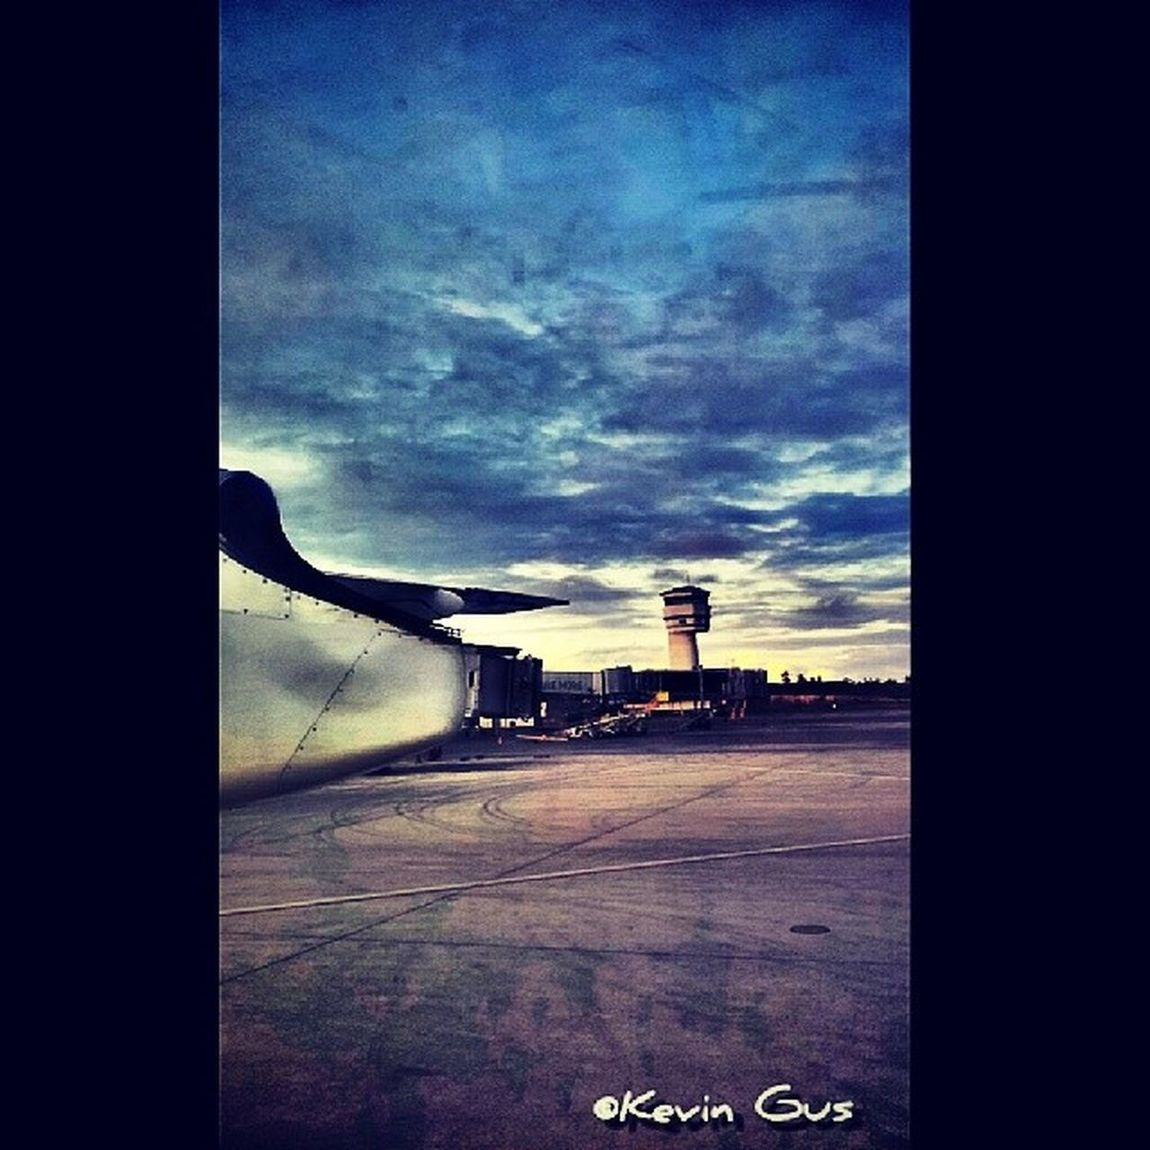 Control Tower Laguindingan Airport Misamis Oriental 12.31.2013 Airport Tower Controltower Wanderlust itsmorefuninthephilippines wowphilippines airport discoverphilippines samsung samsungasia samsungphotography phonephotography filipino pinoy